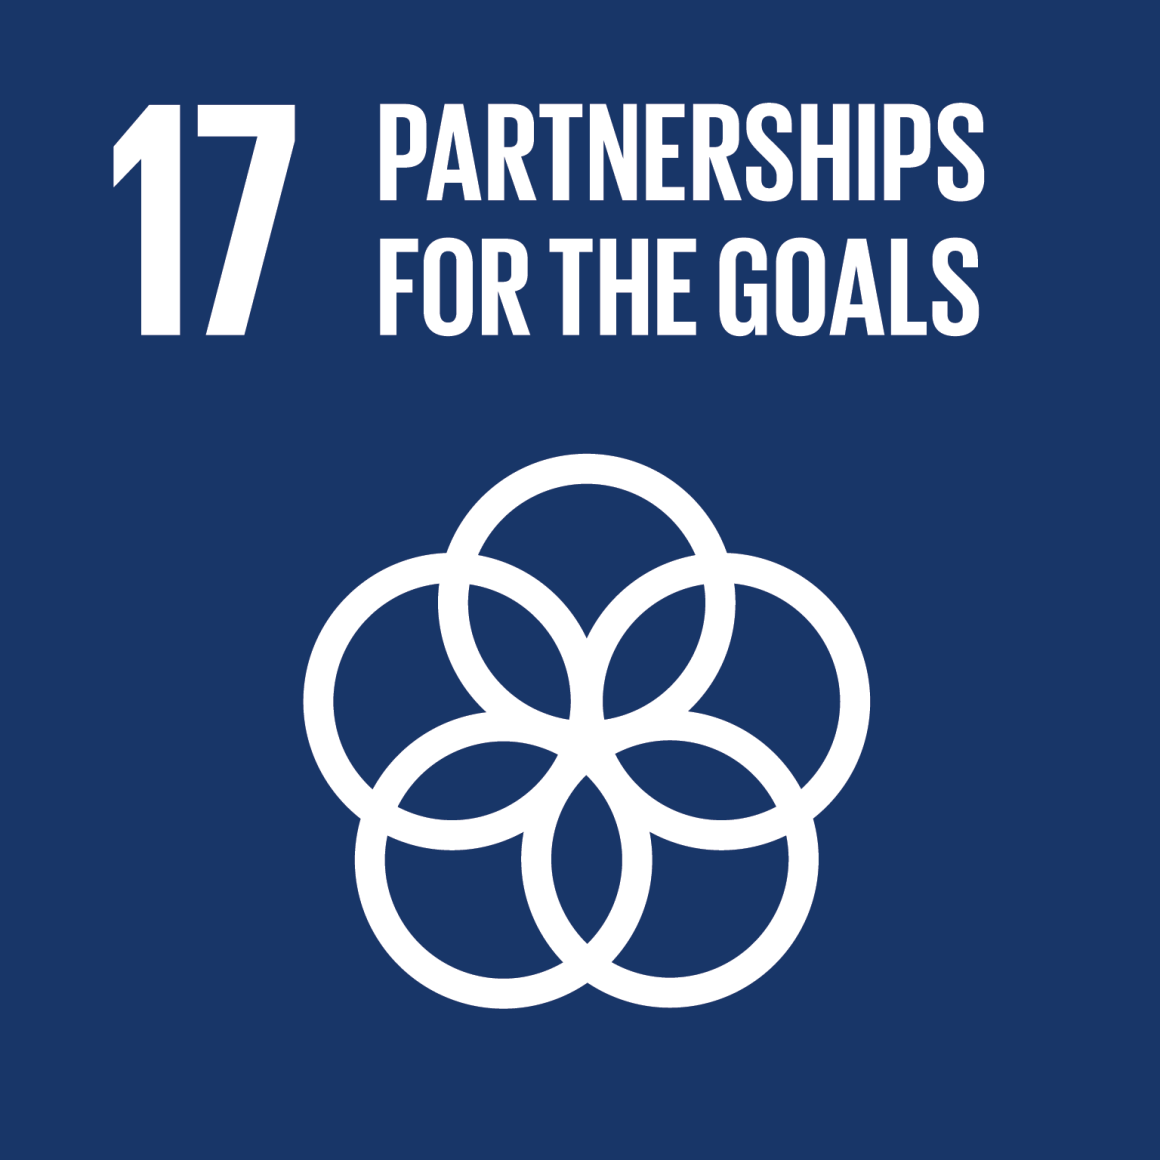 Global Partnerships  United Nations Sustainable Development Goal  Partnerships For The Goals